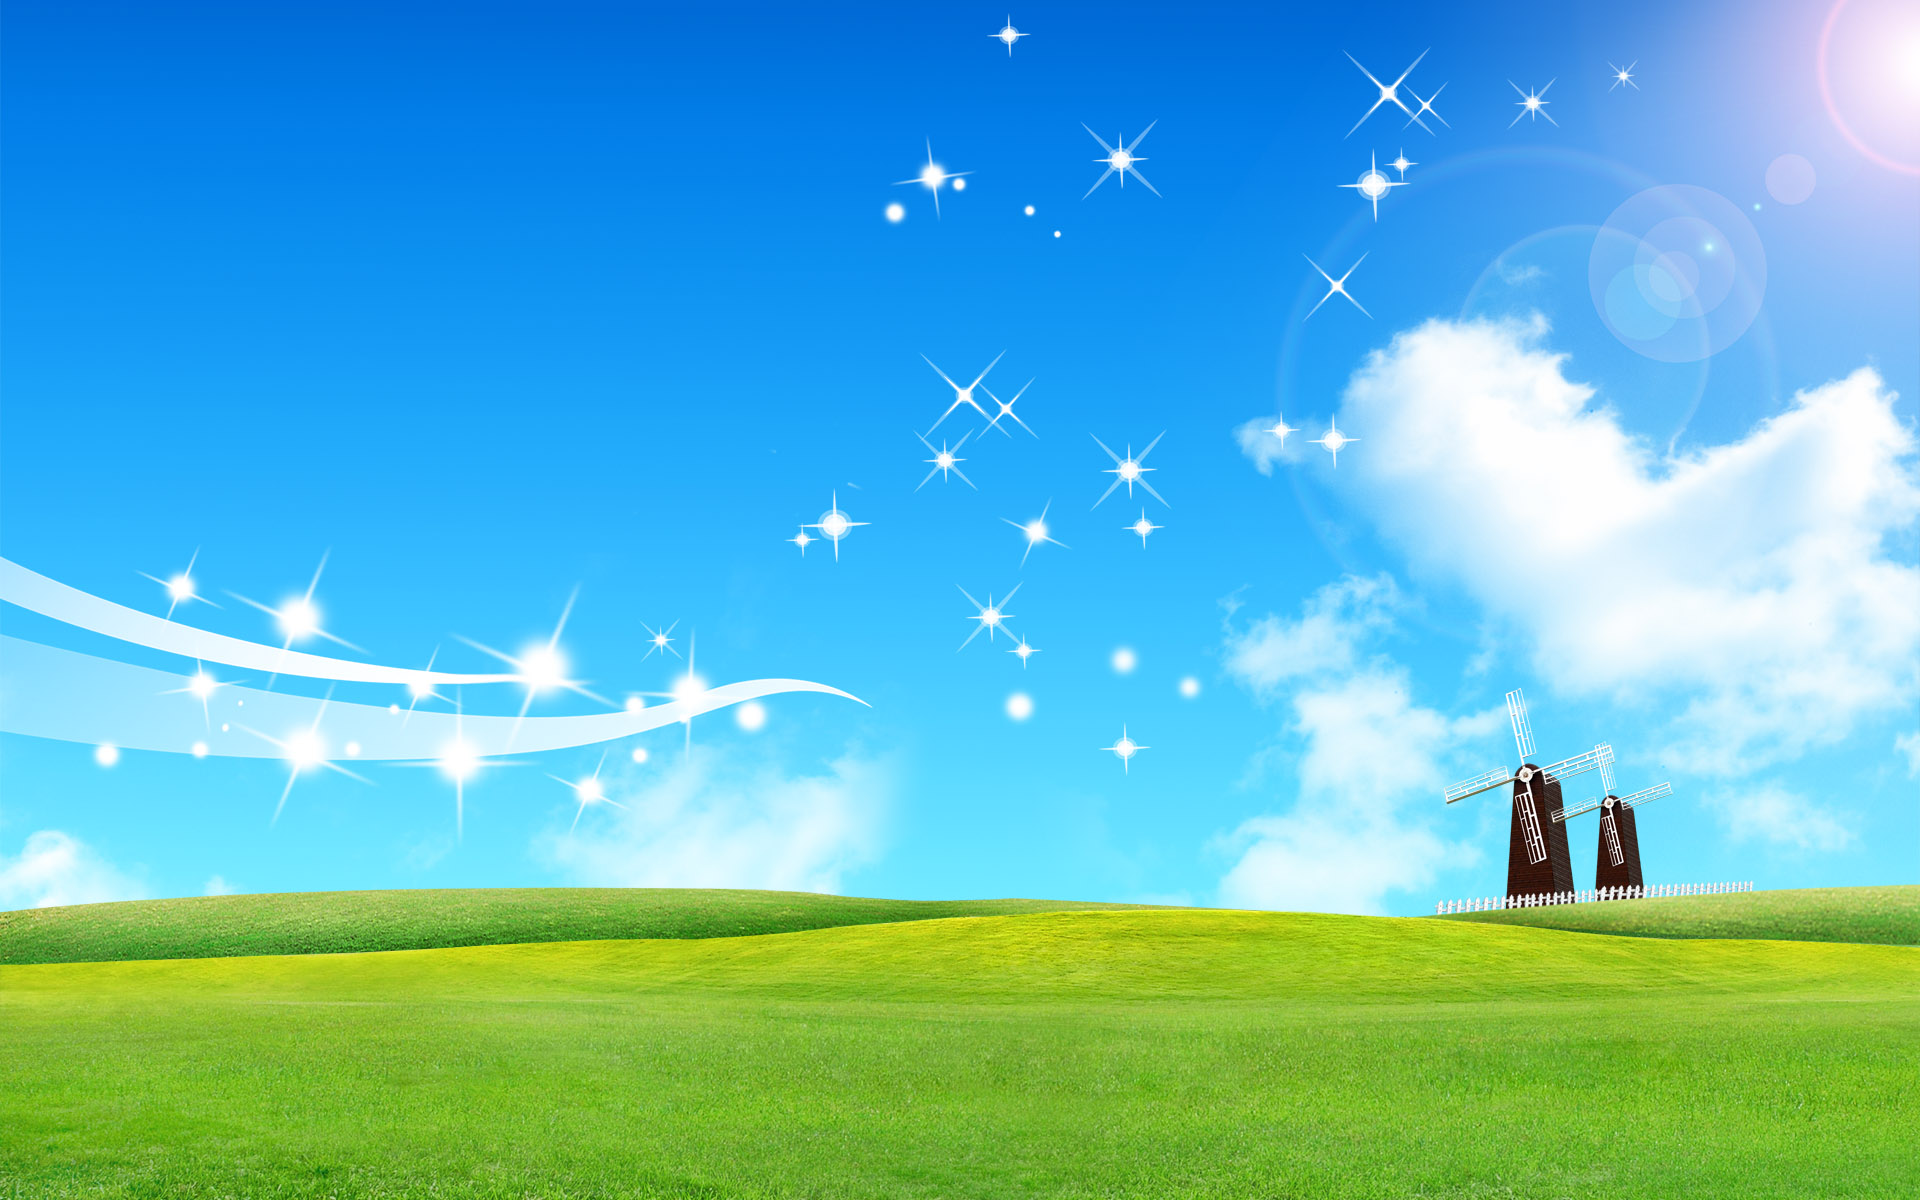 Shining Sky Wallpapers HD Wallpapers 1920x1200